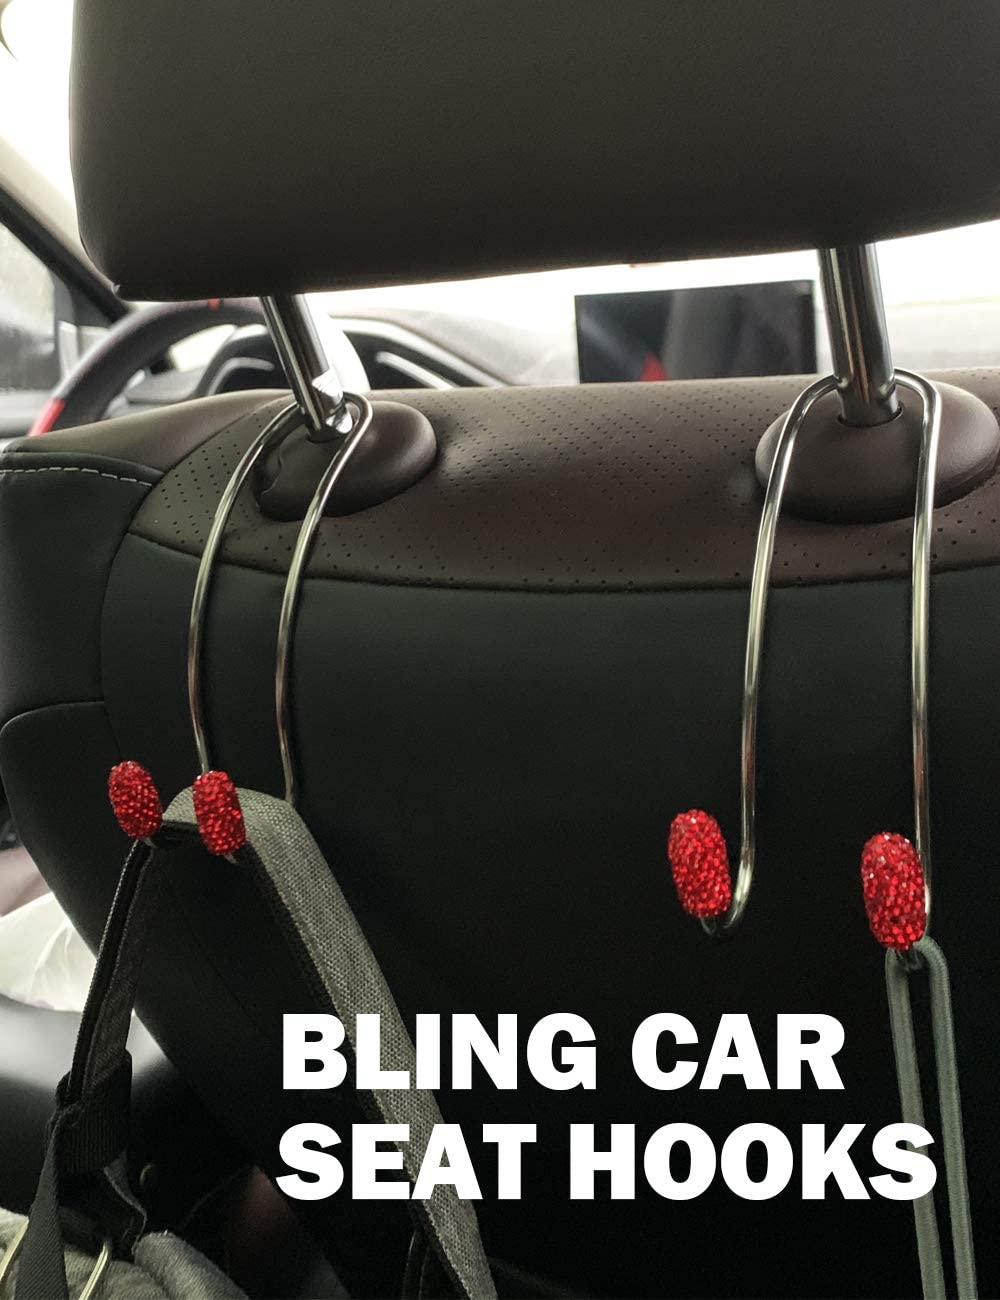 Bling Car Accessories for Women Car Bag Hanger for Bag Clothes Grocery with Ring Emblem Sticker and 4 Valve Stem Caps PLANTURECO 2 Pack Bling Car Seat Hooks Universal Headrest Hooks for Car Pink